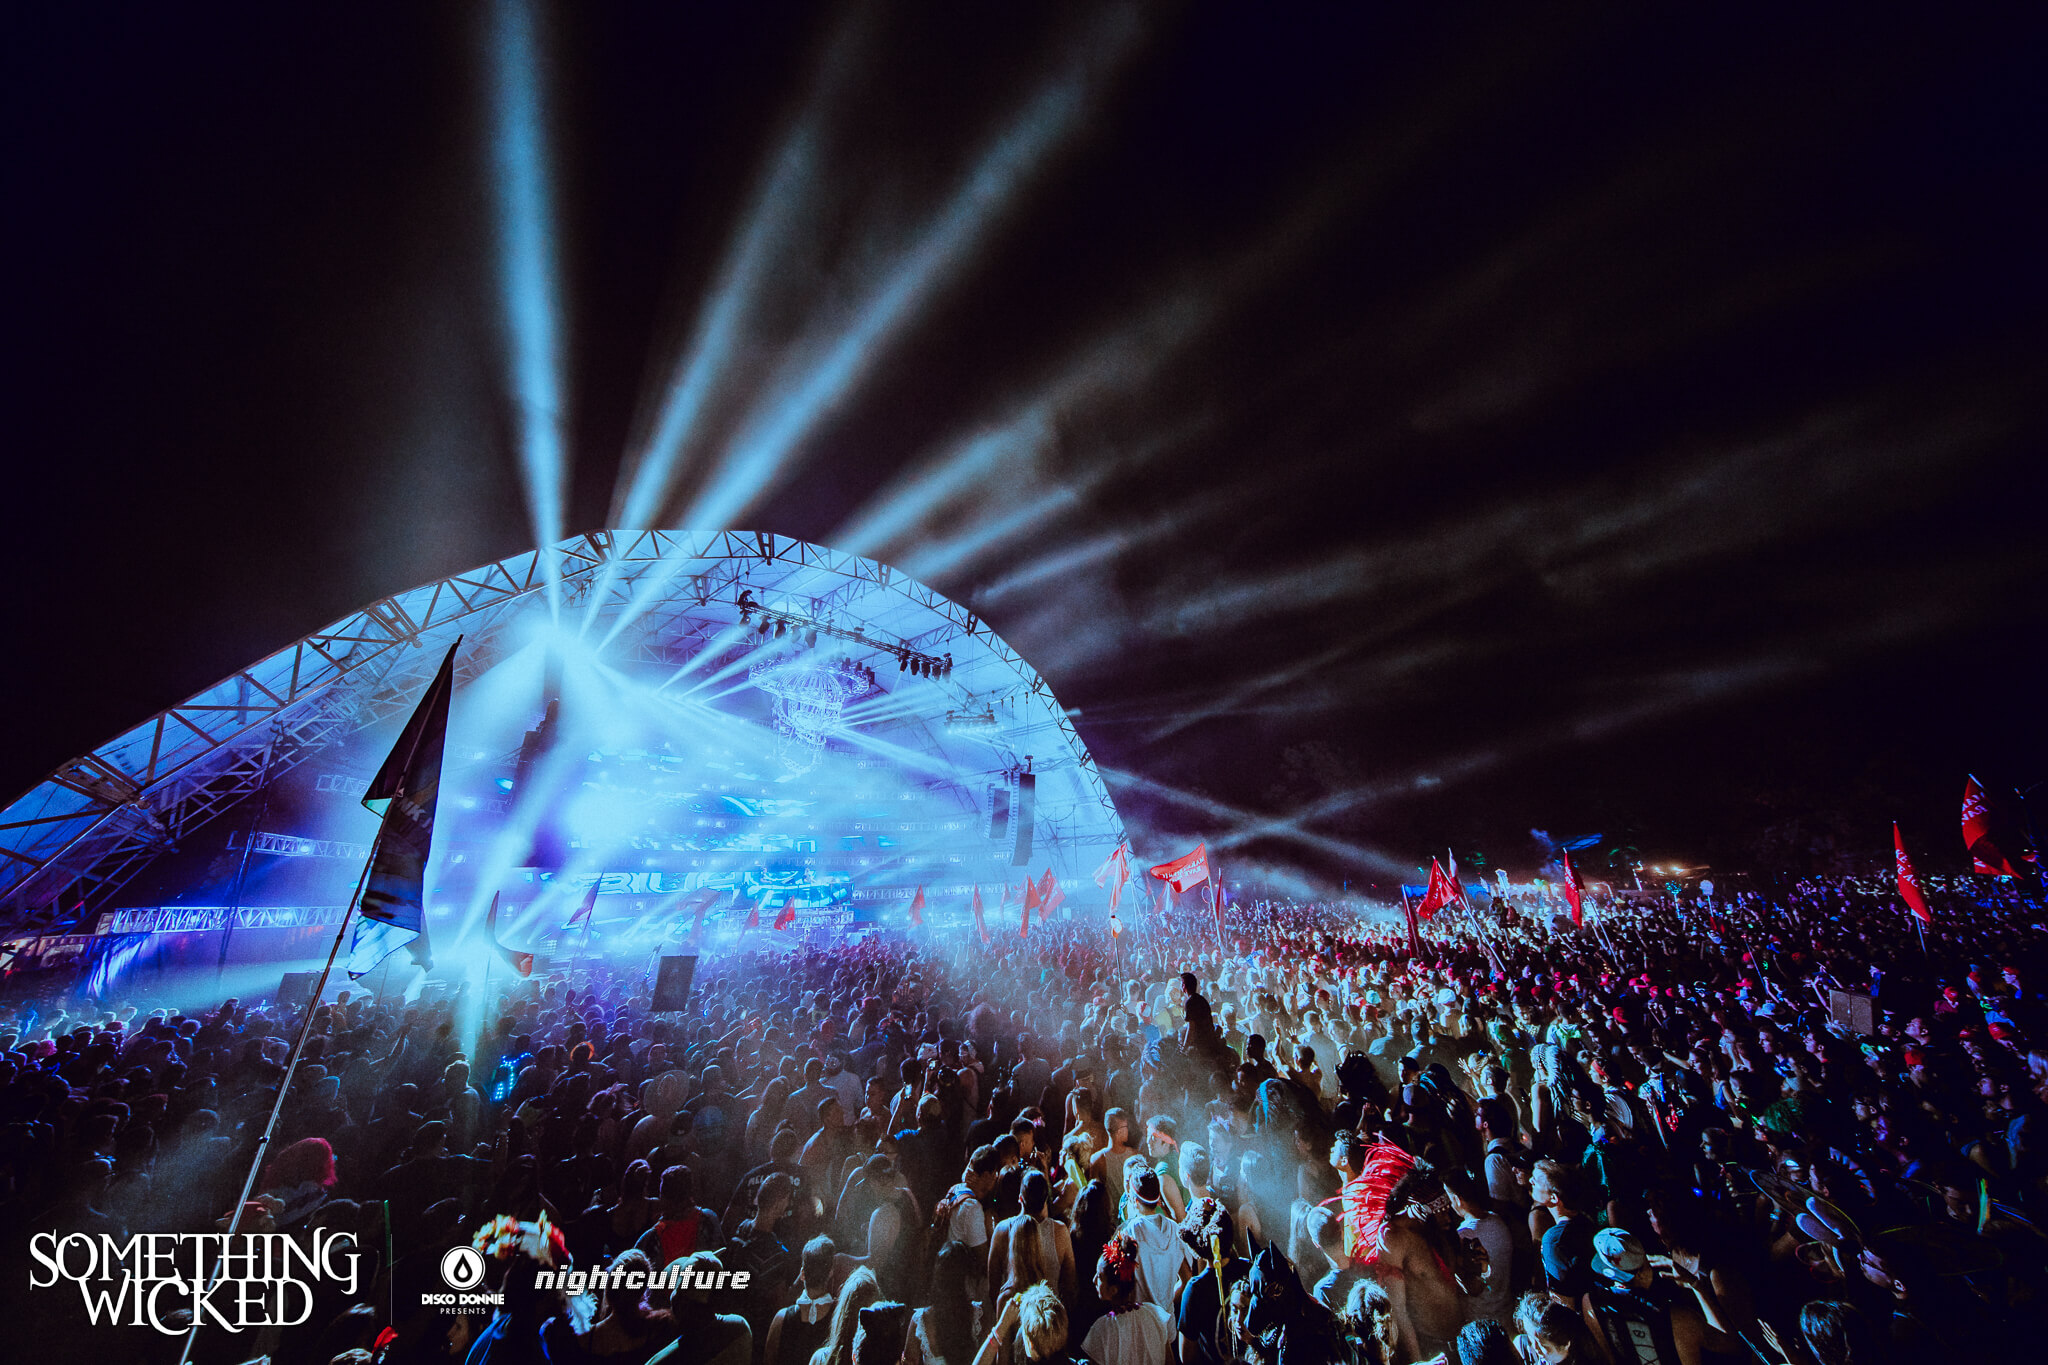 Shadowlands main stage at Something Wicked. Photo by Julian Bajsel.